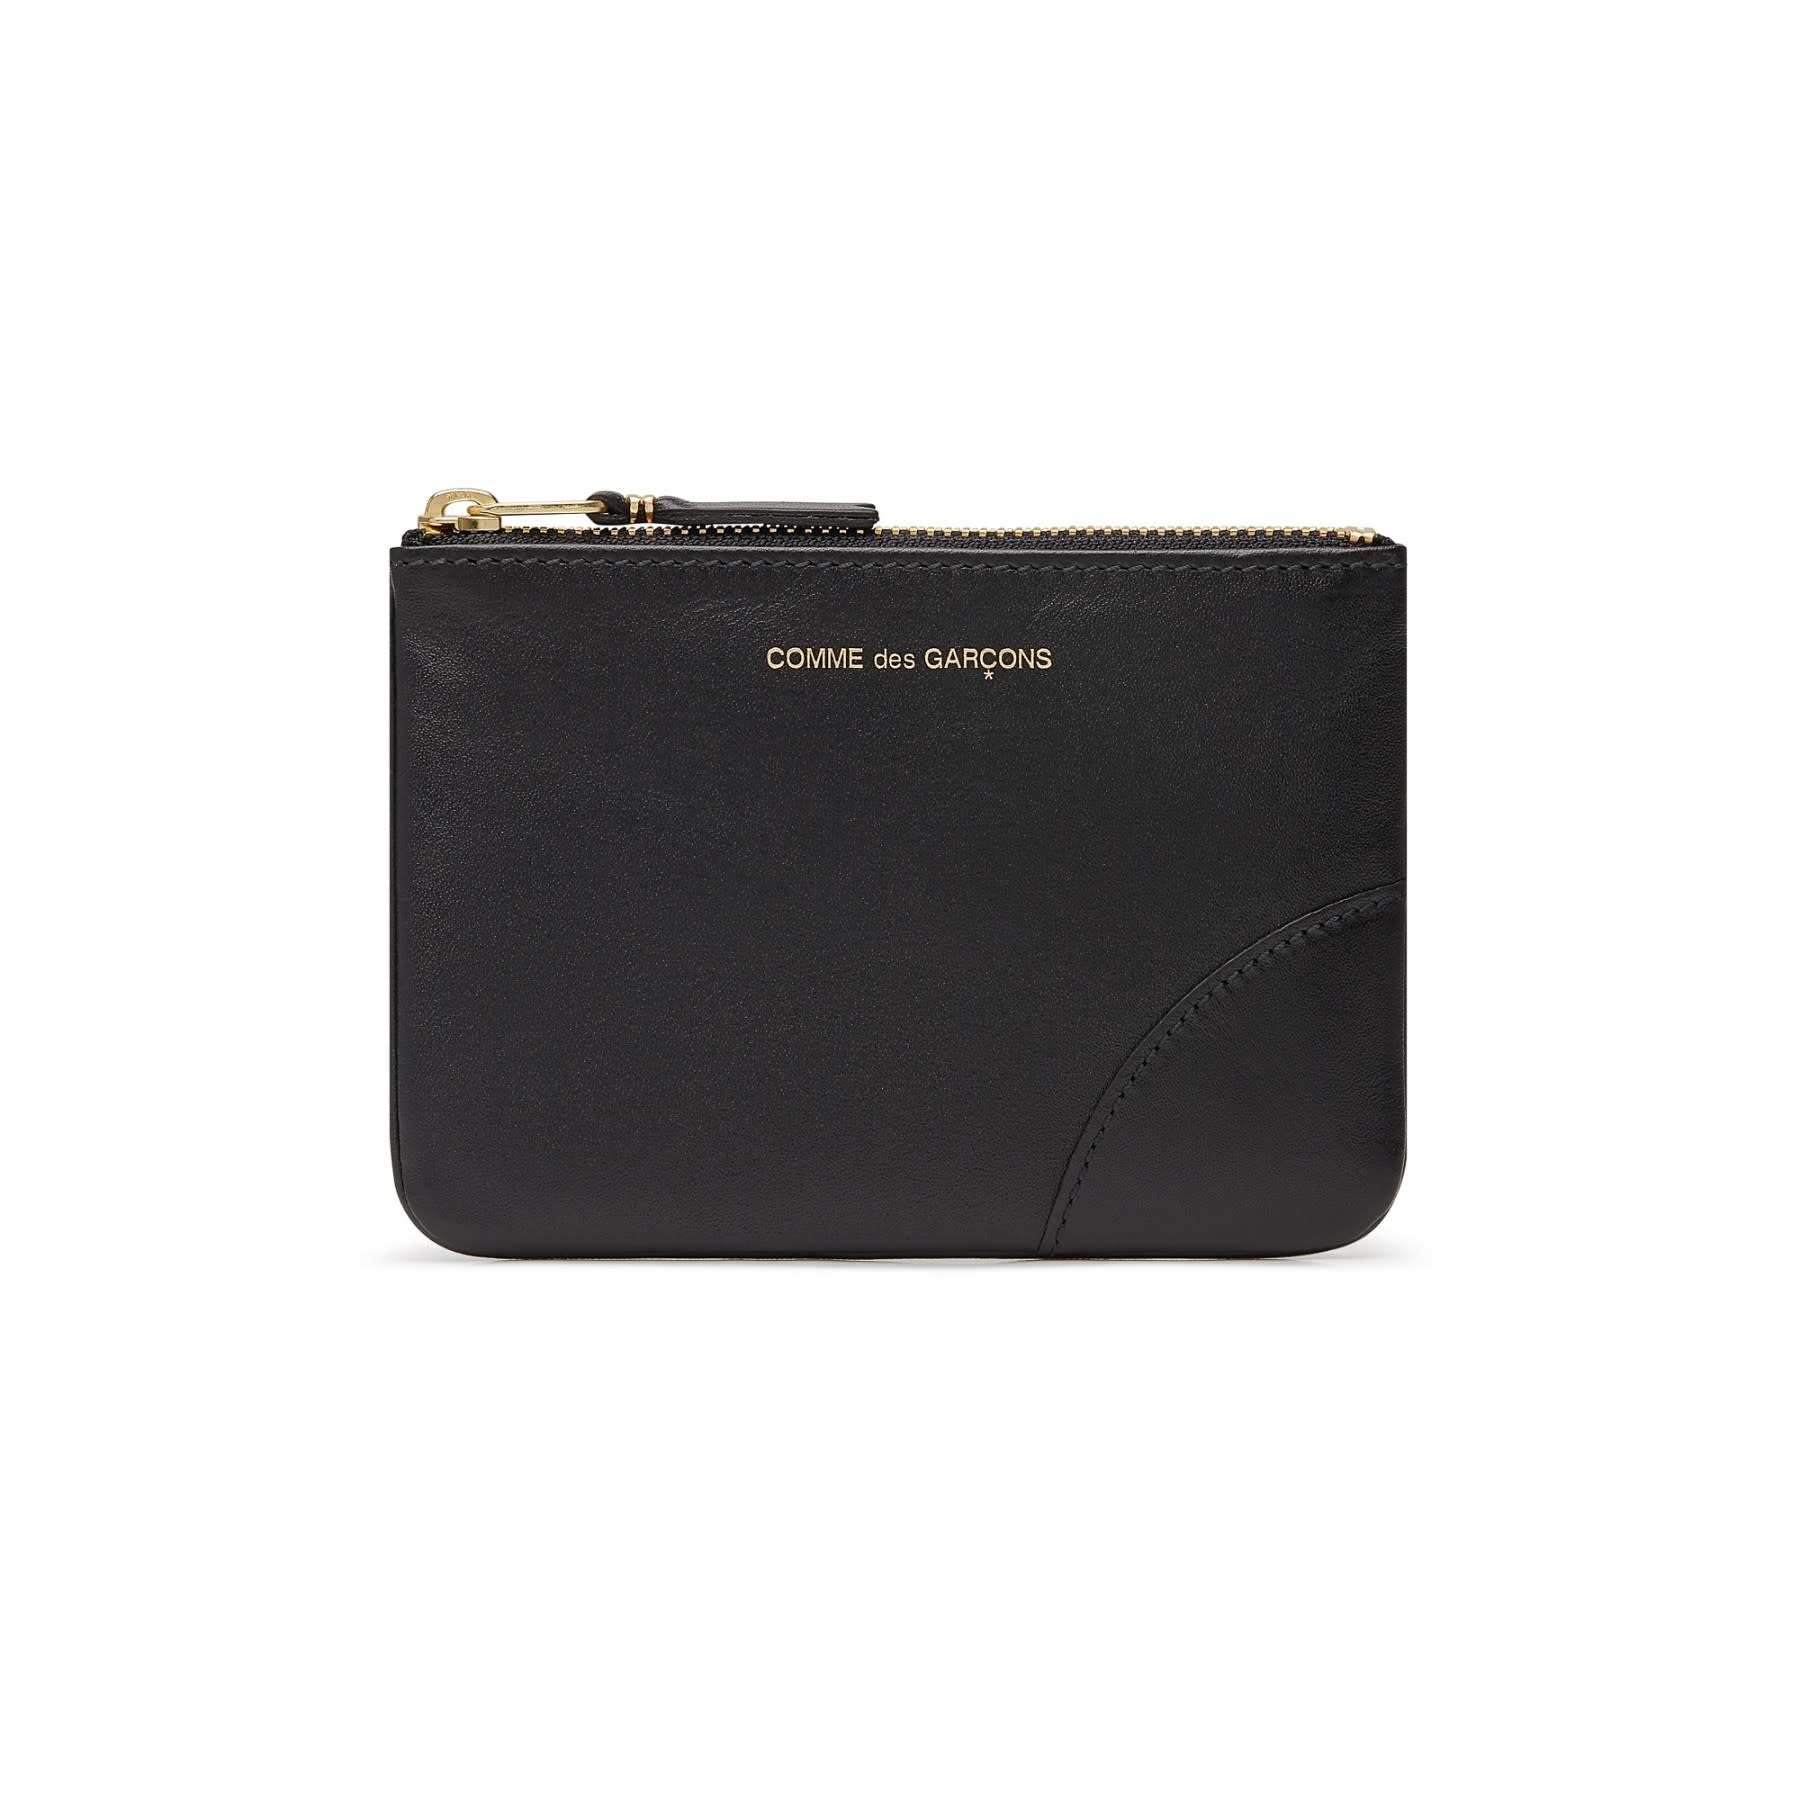 COMME des GARÇONS Wallet SMALL Leather ZIP POUCH Black SA8100